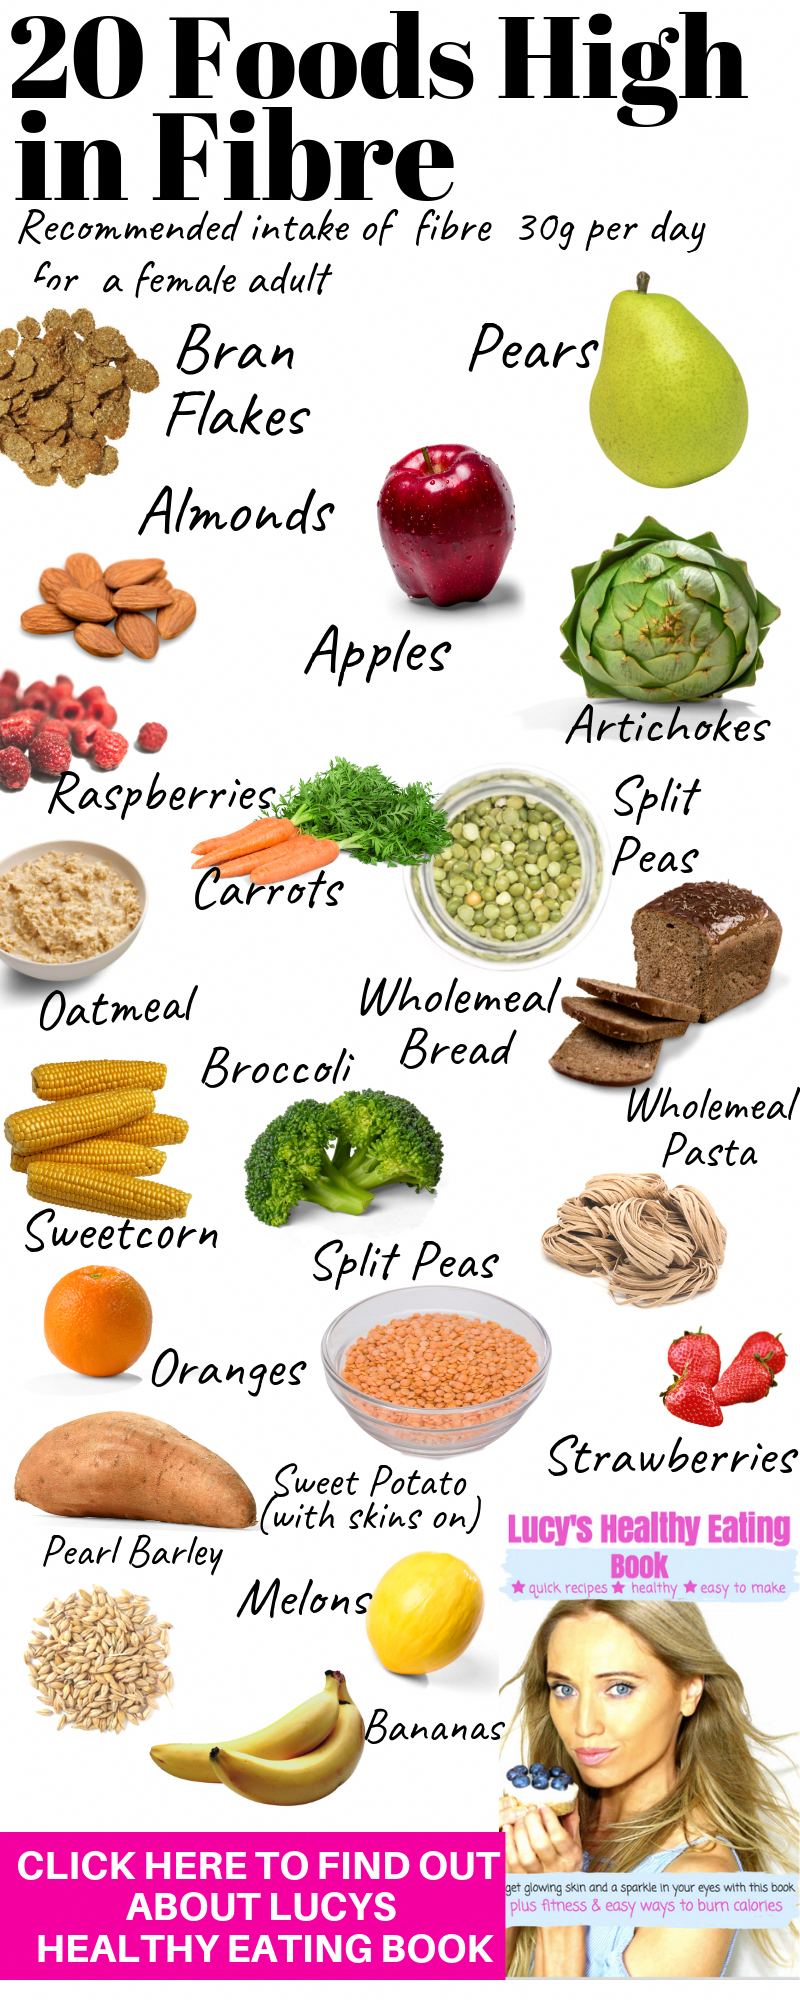 Here are 20 foods which are rich in fibre. Fibre is an